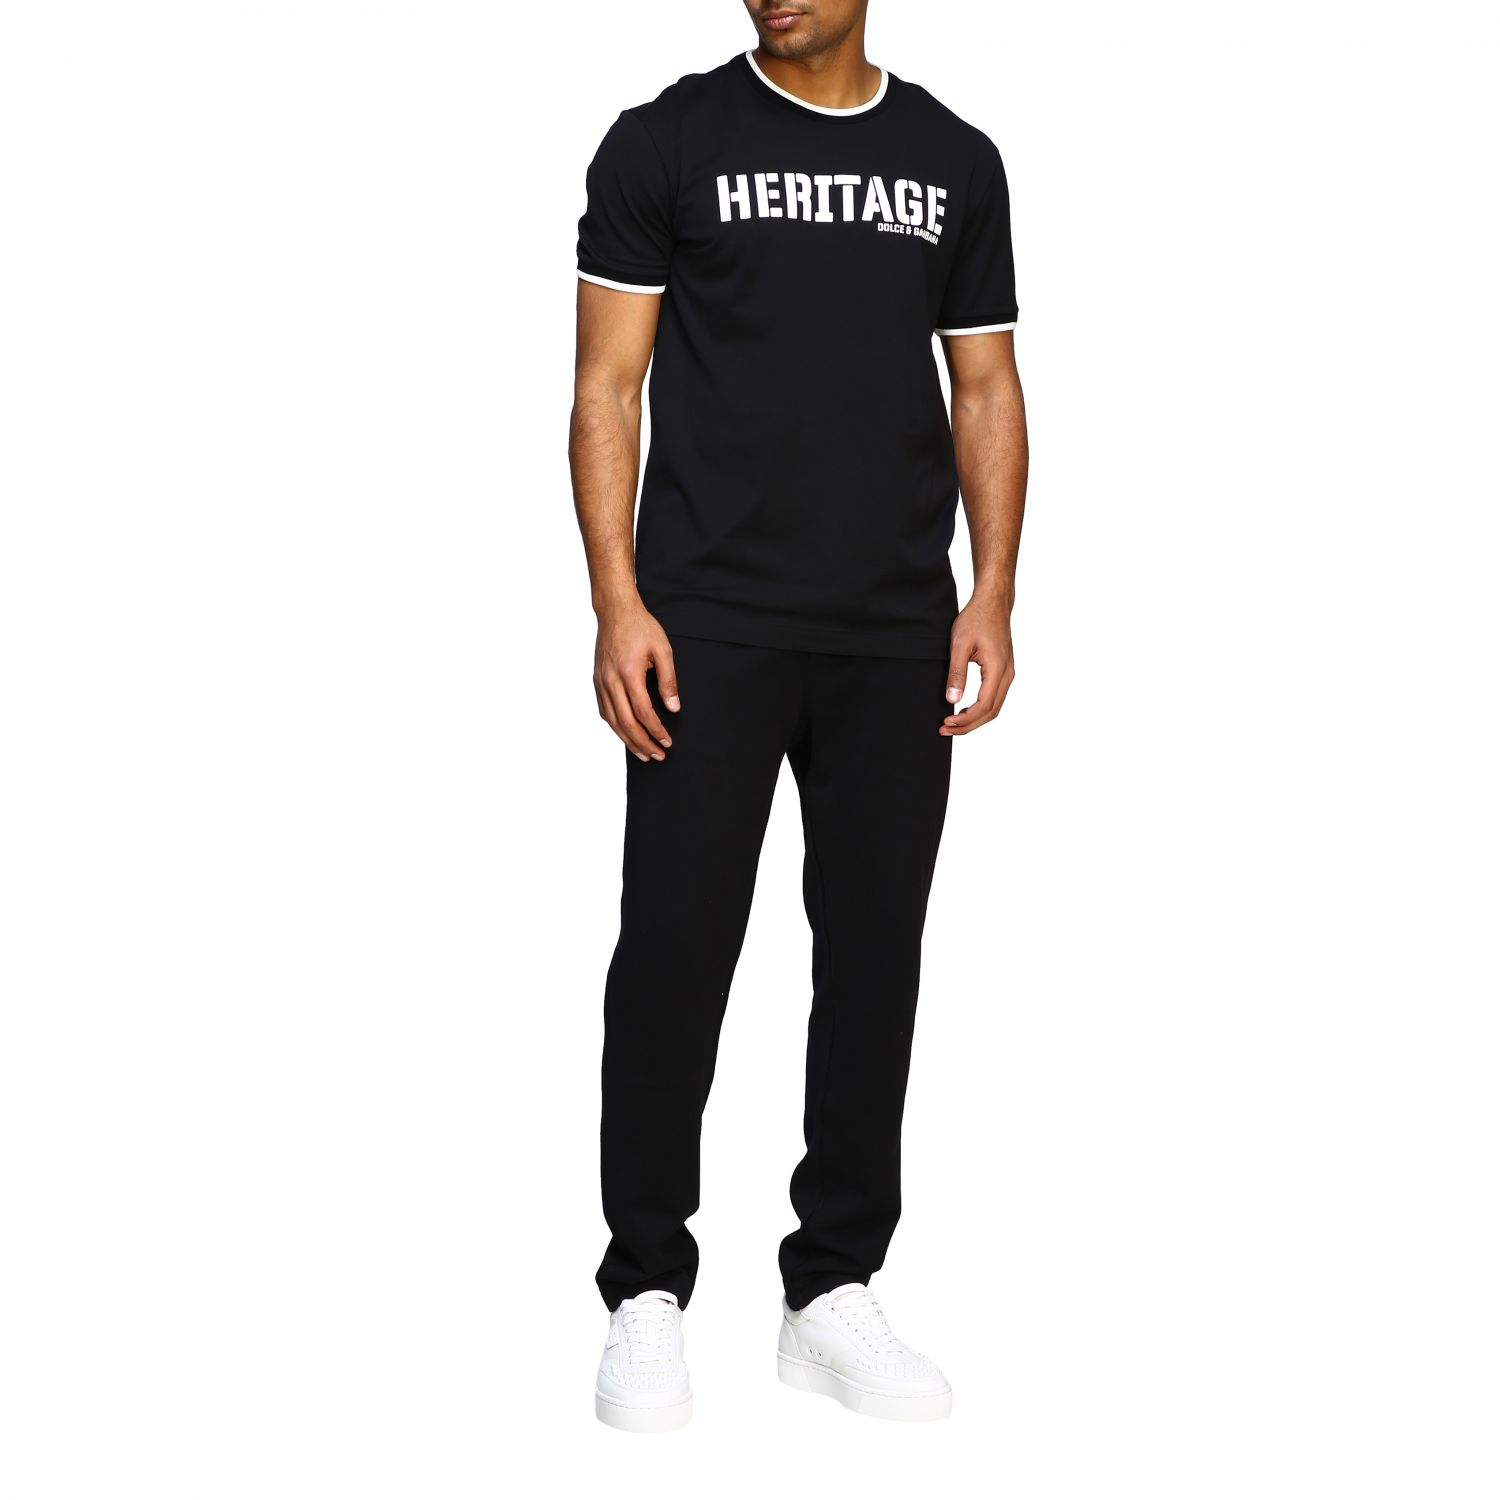 T-shirt Dolce & Gabbana: Dolce & Gabbana short-sleeved T-shirt with Heritage print black 2